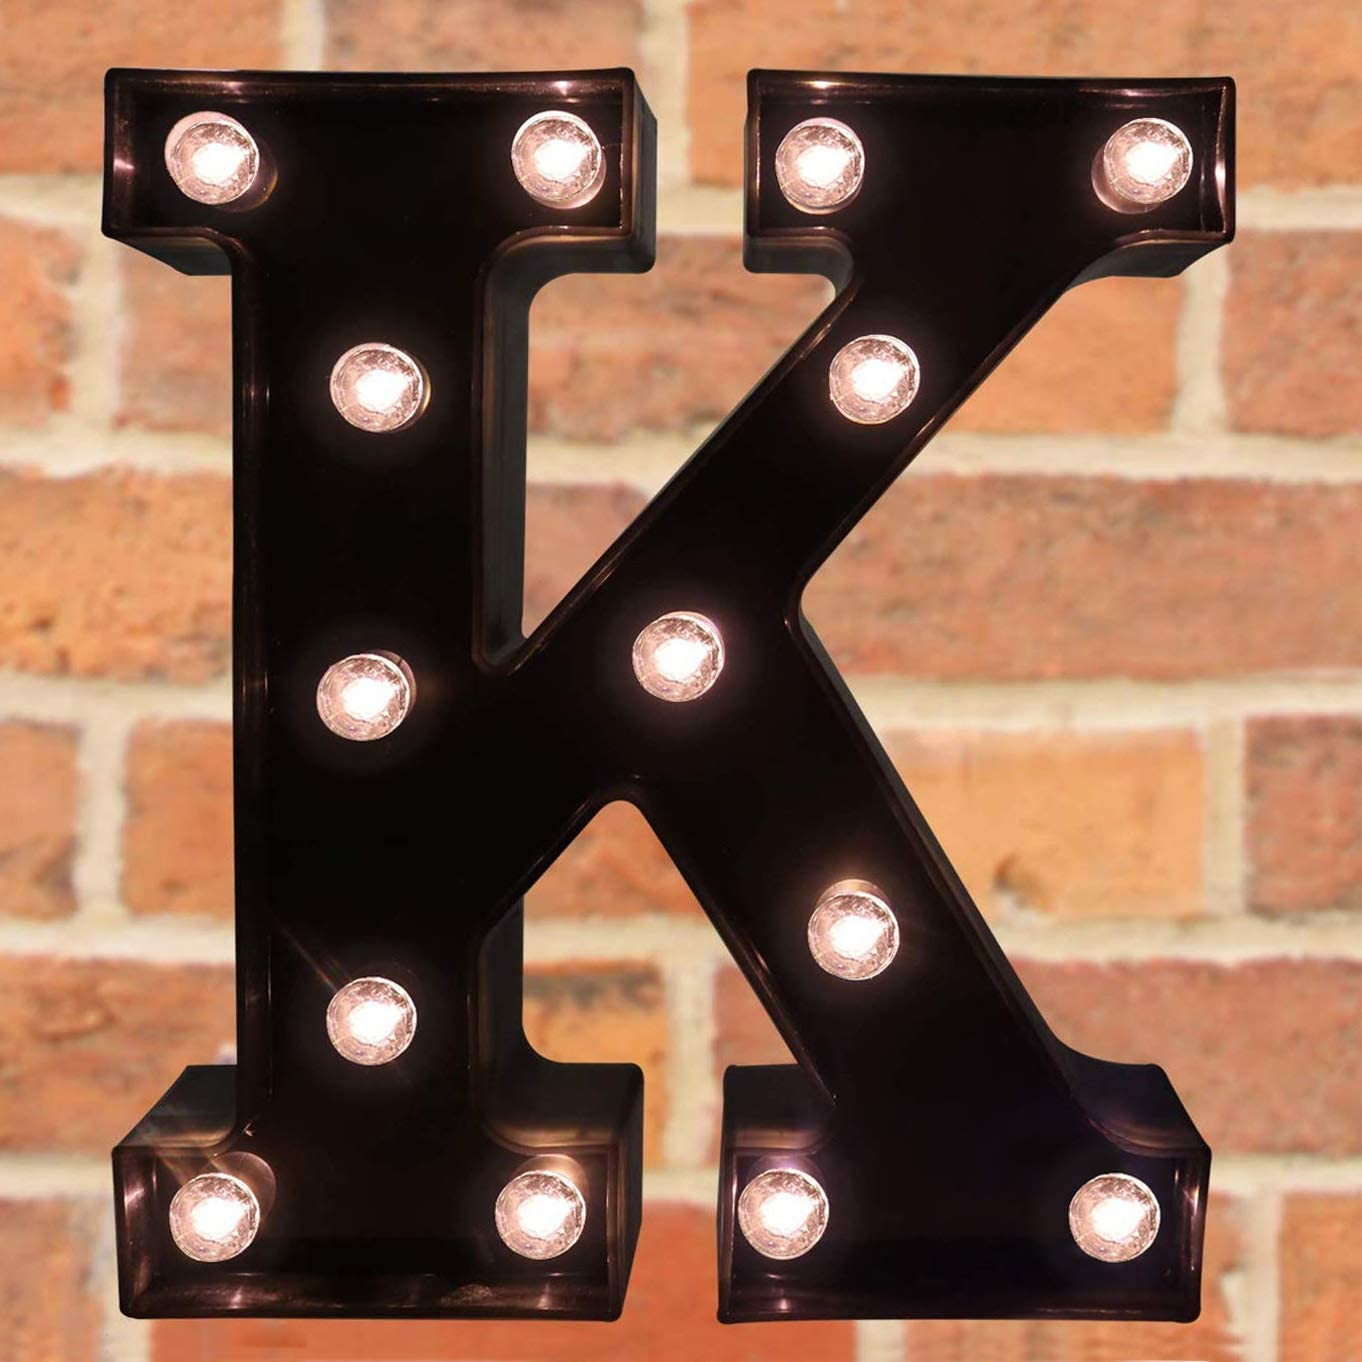 Decorative LED Illuminated Letter Marquee Sign - Alphabet Marquee Letters with Lights for Wedding Birthday Party Christmas Night Light Lamp Home Bar Decoration K, Black